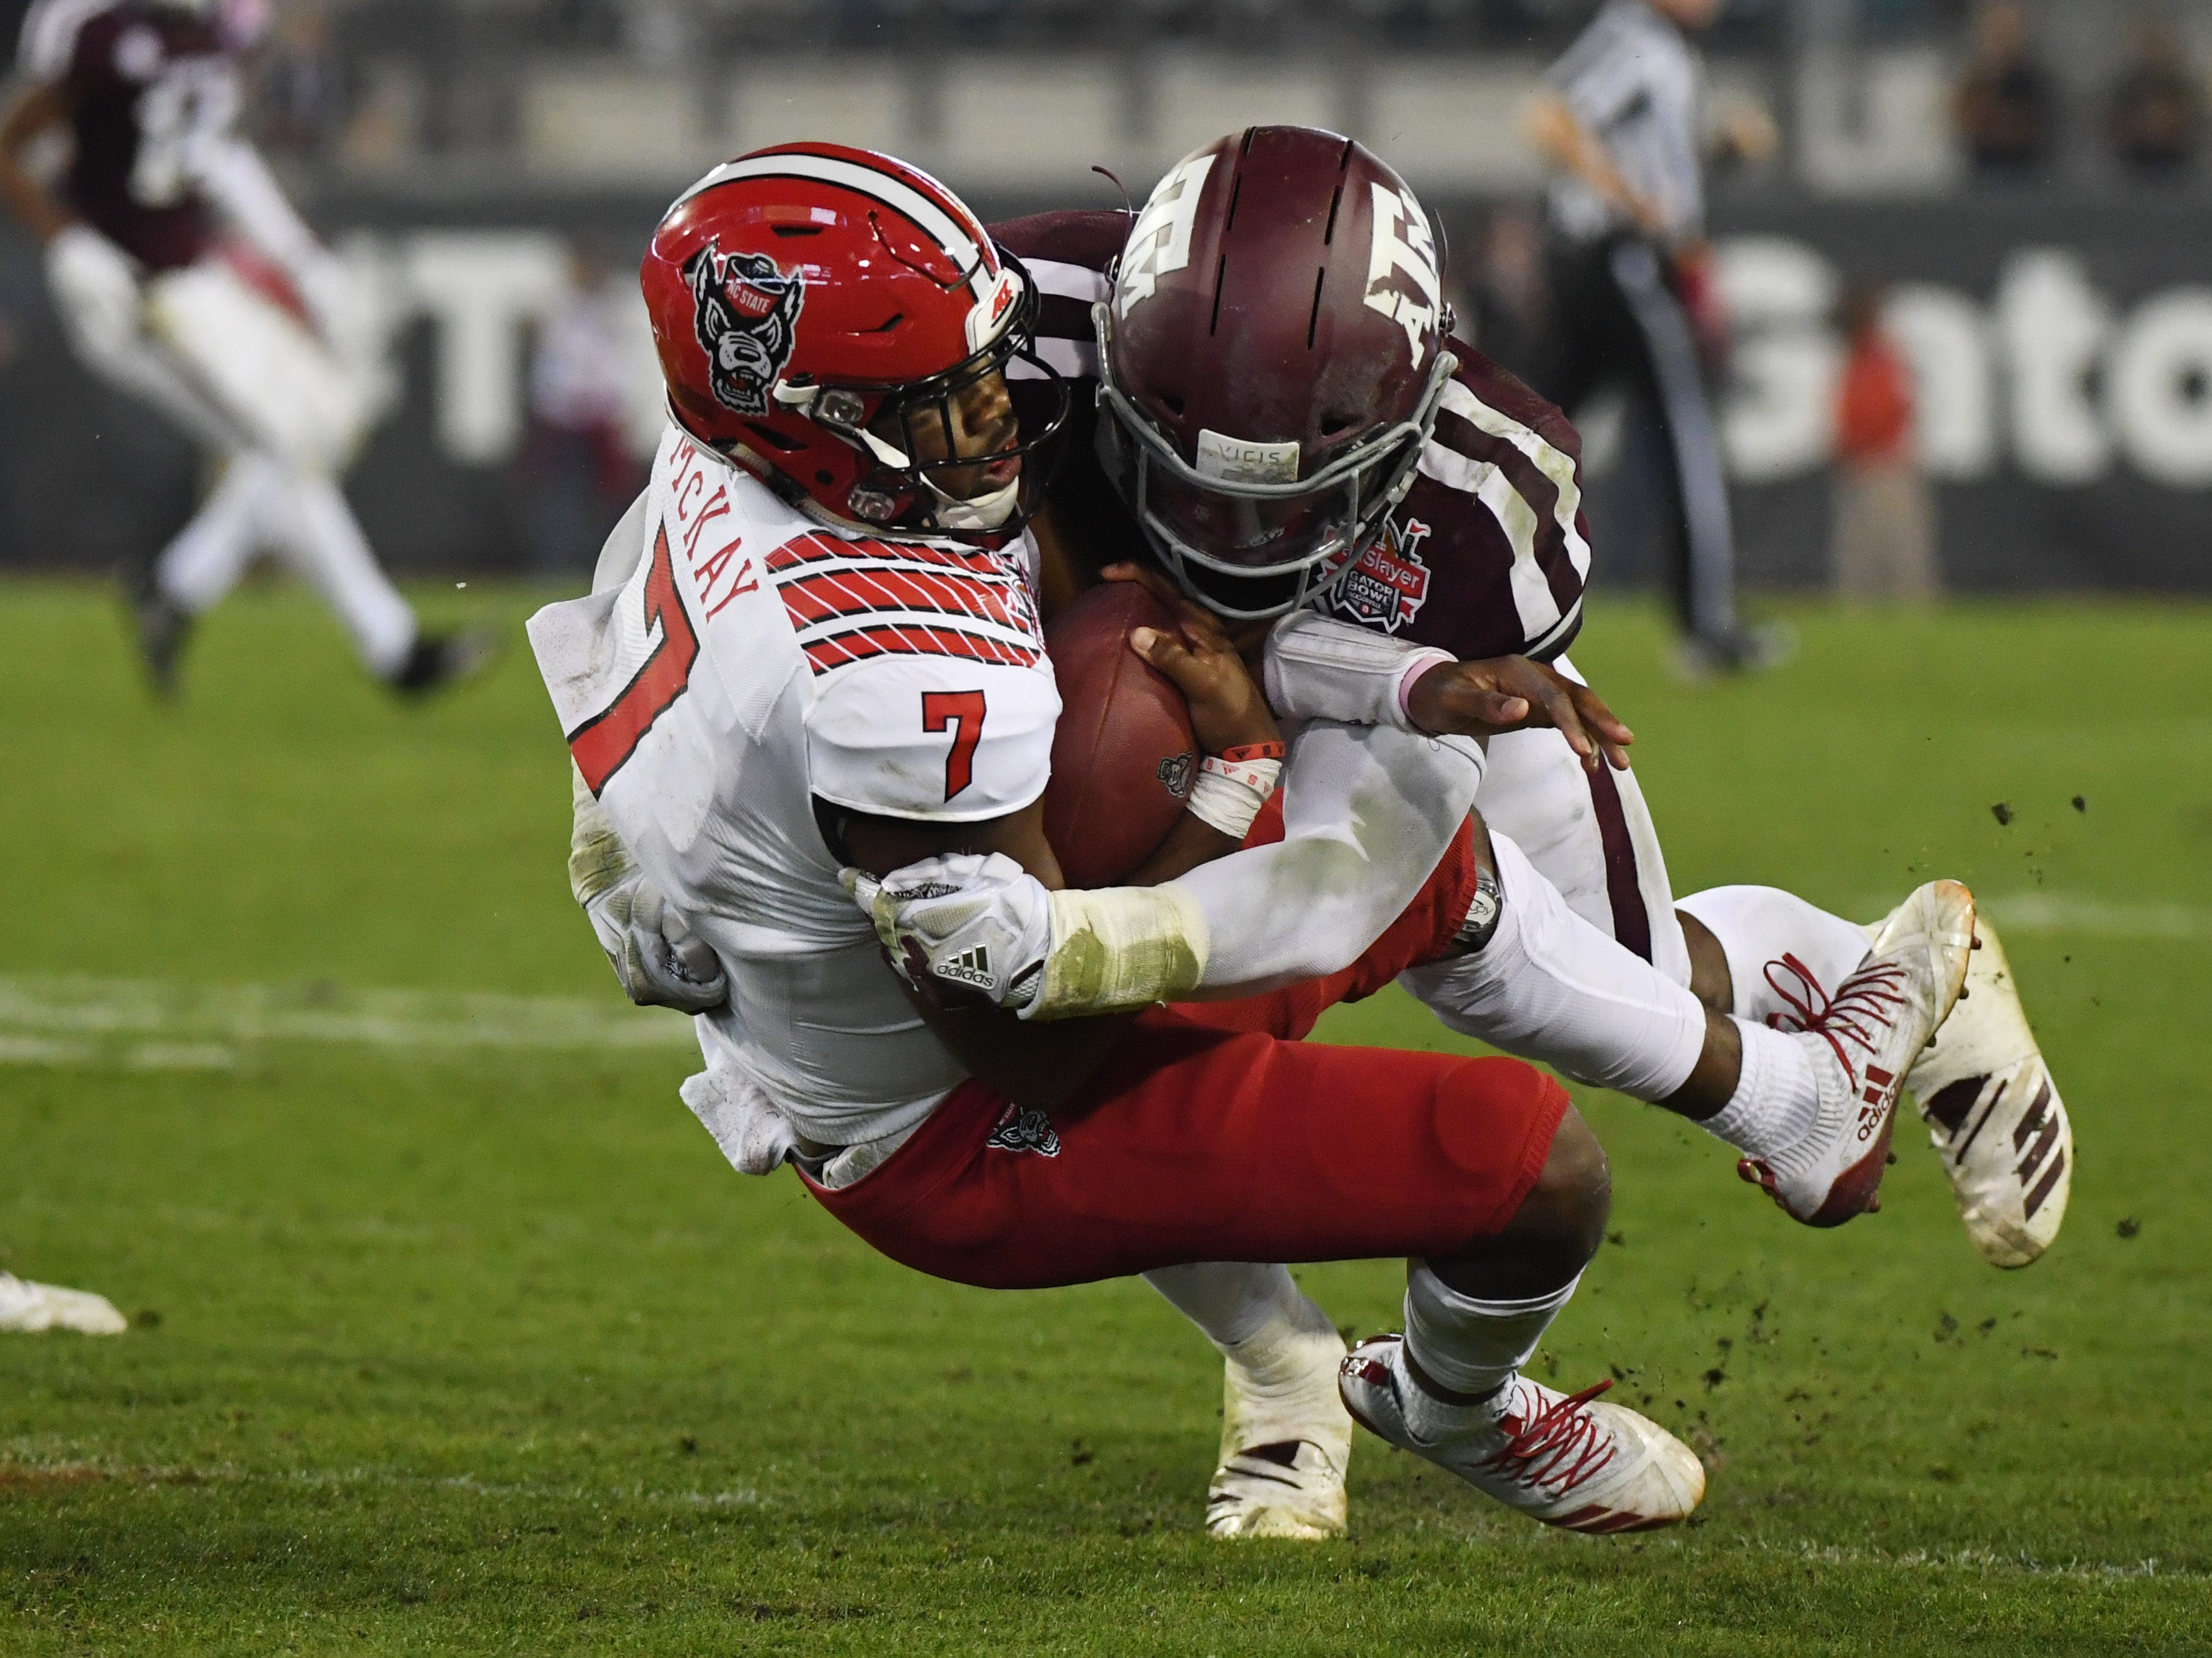 Texas A&M Aggies linebacker Buddy Johnson (1) tackles North Carolina State Wolfpack quarterback Matthew McKay (7) during the forth quarter of the Gator Bowl.